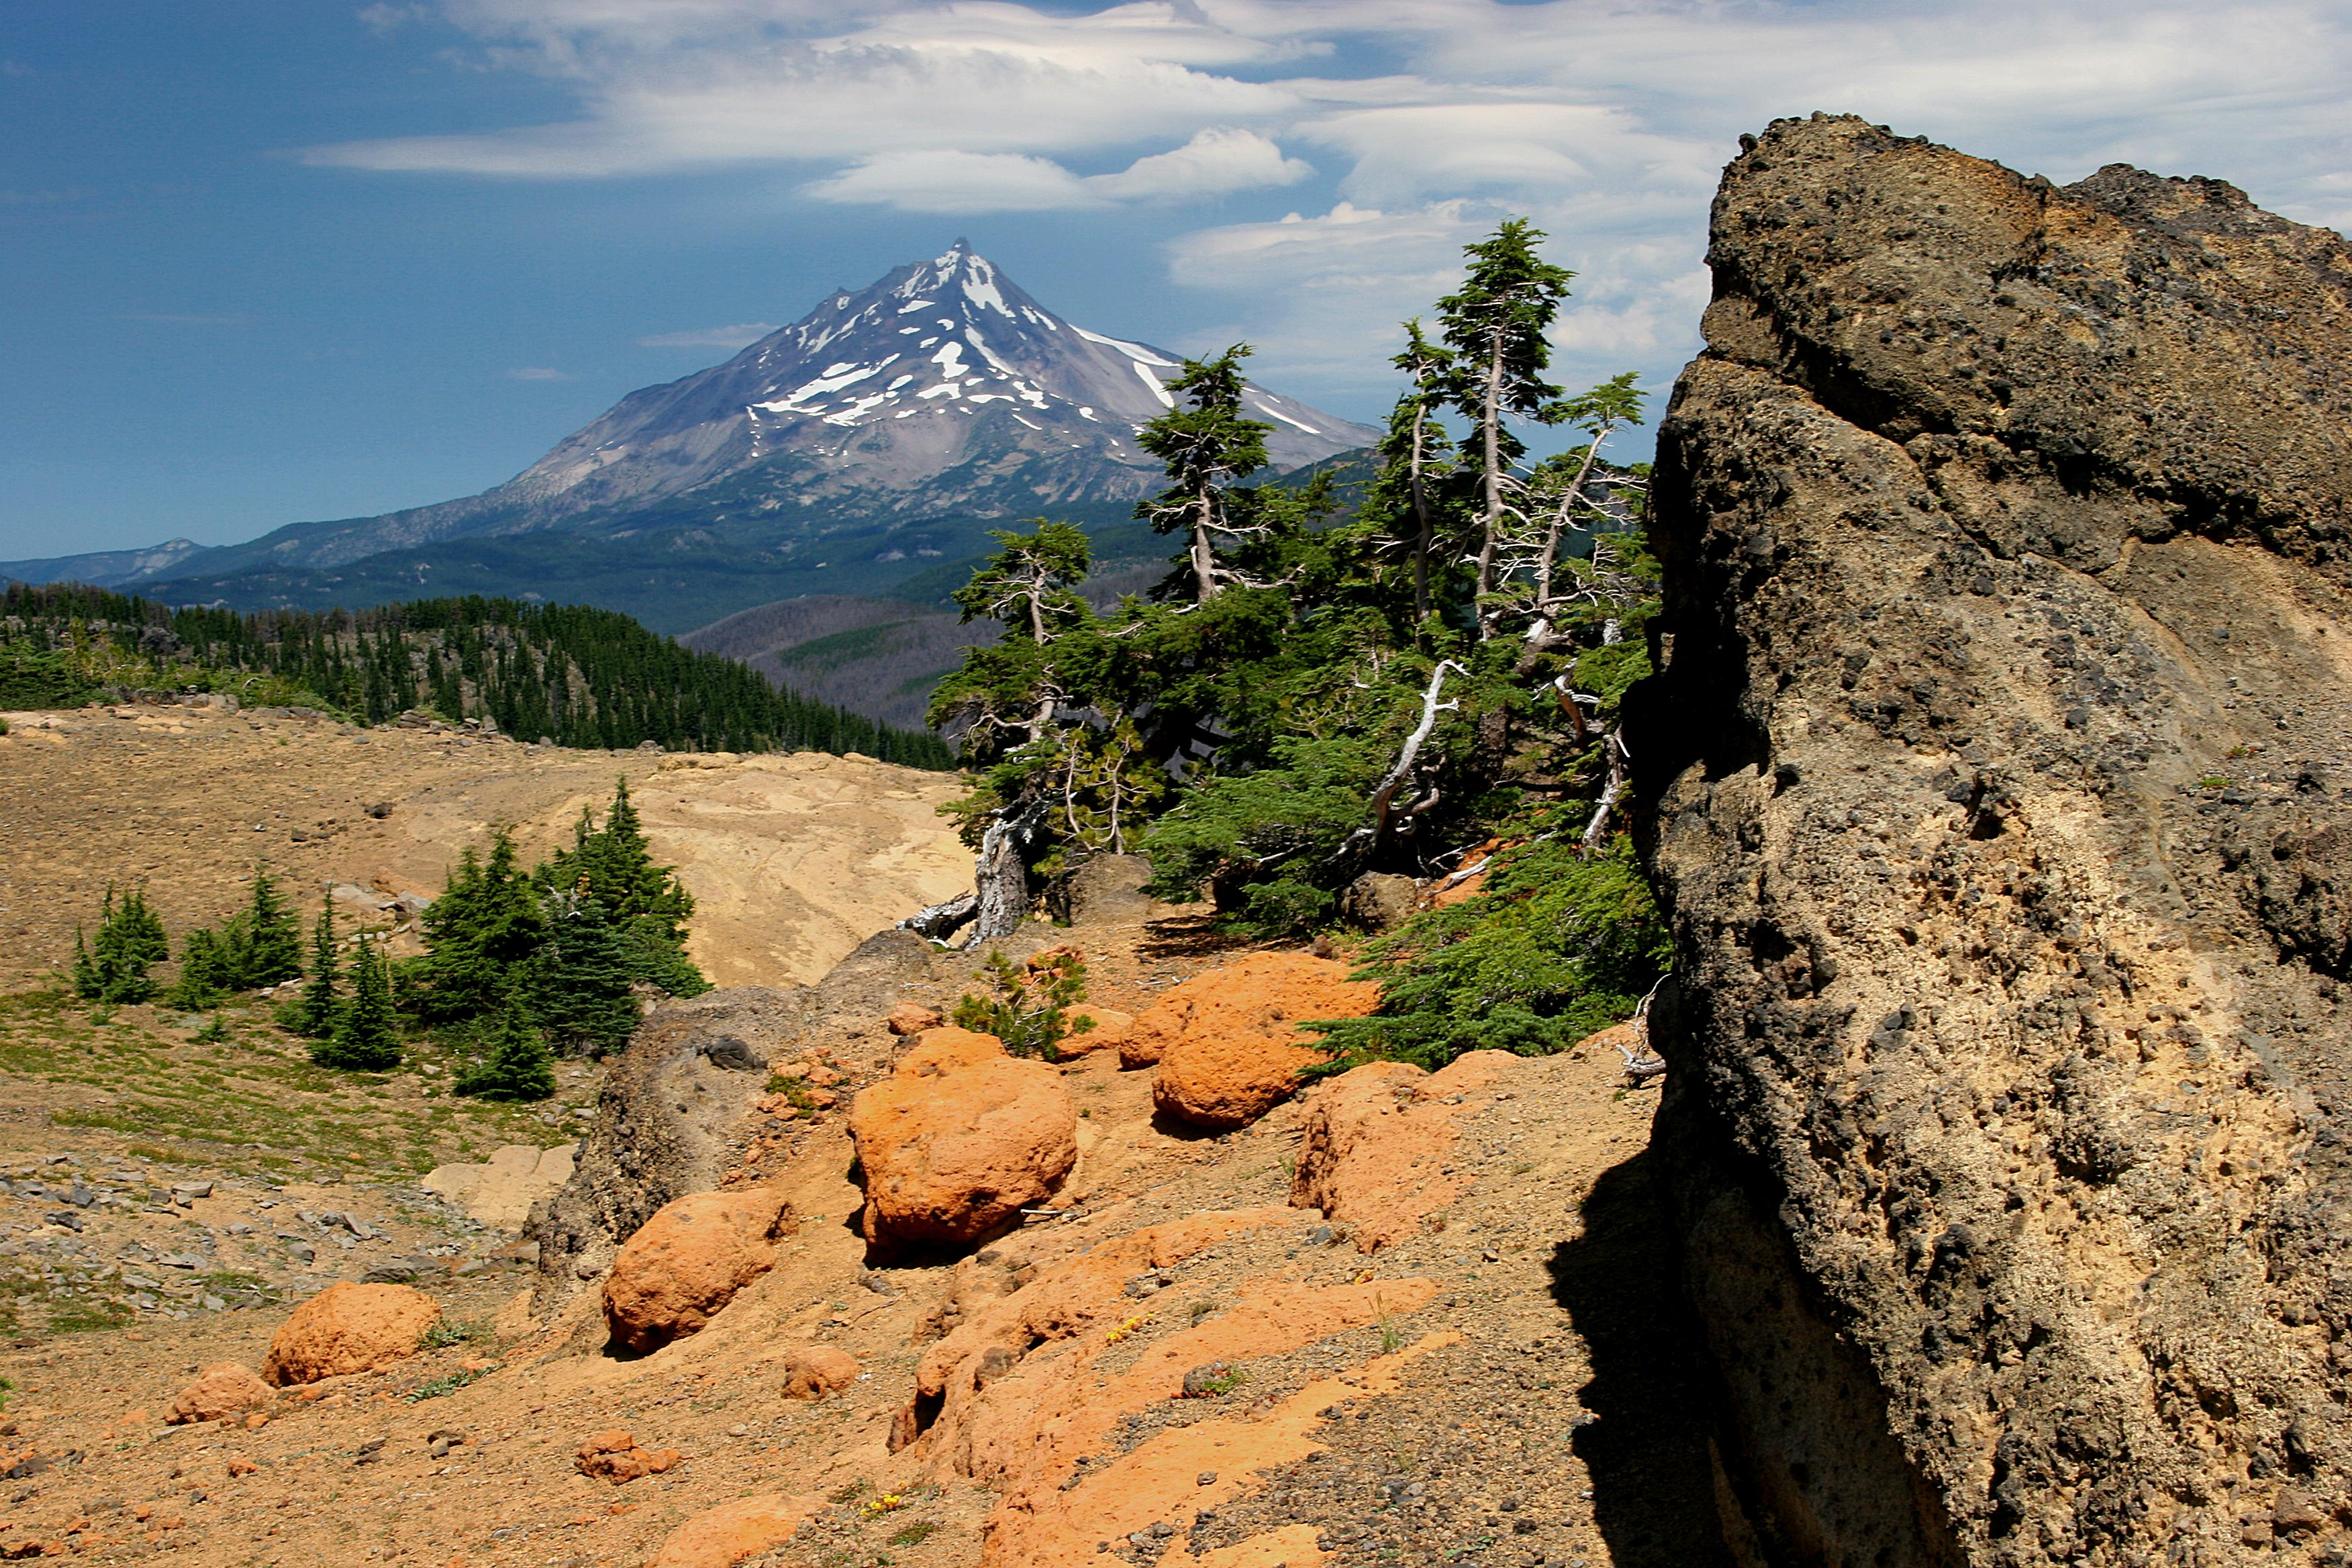 Mount Jefferson from Three Fingered Jack (USDA Forest Service)